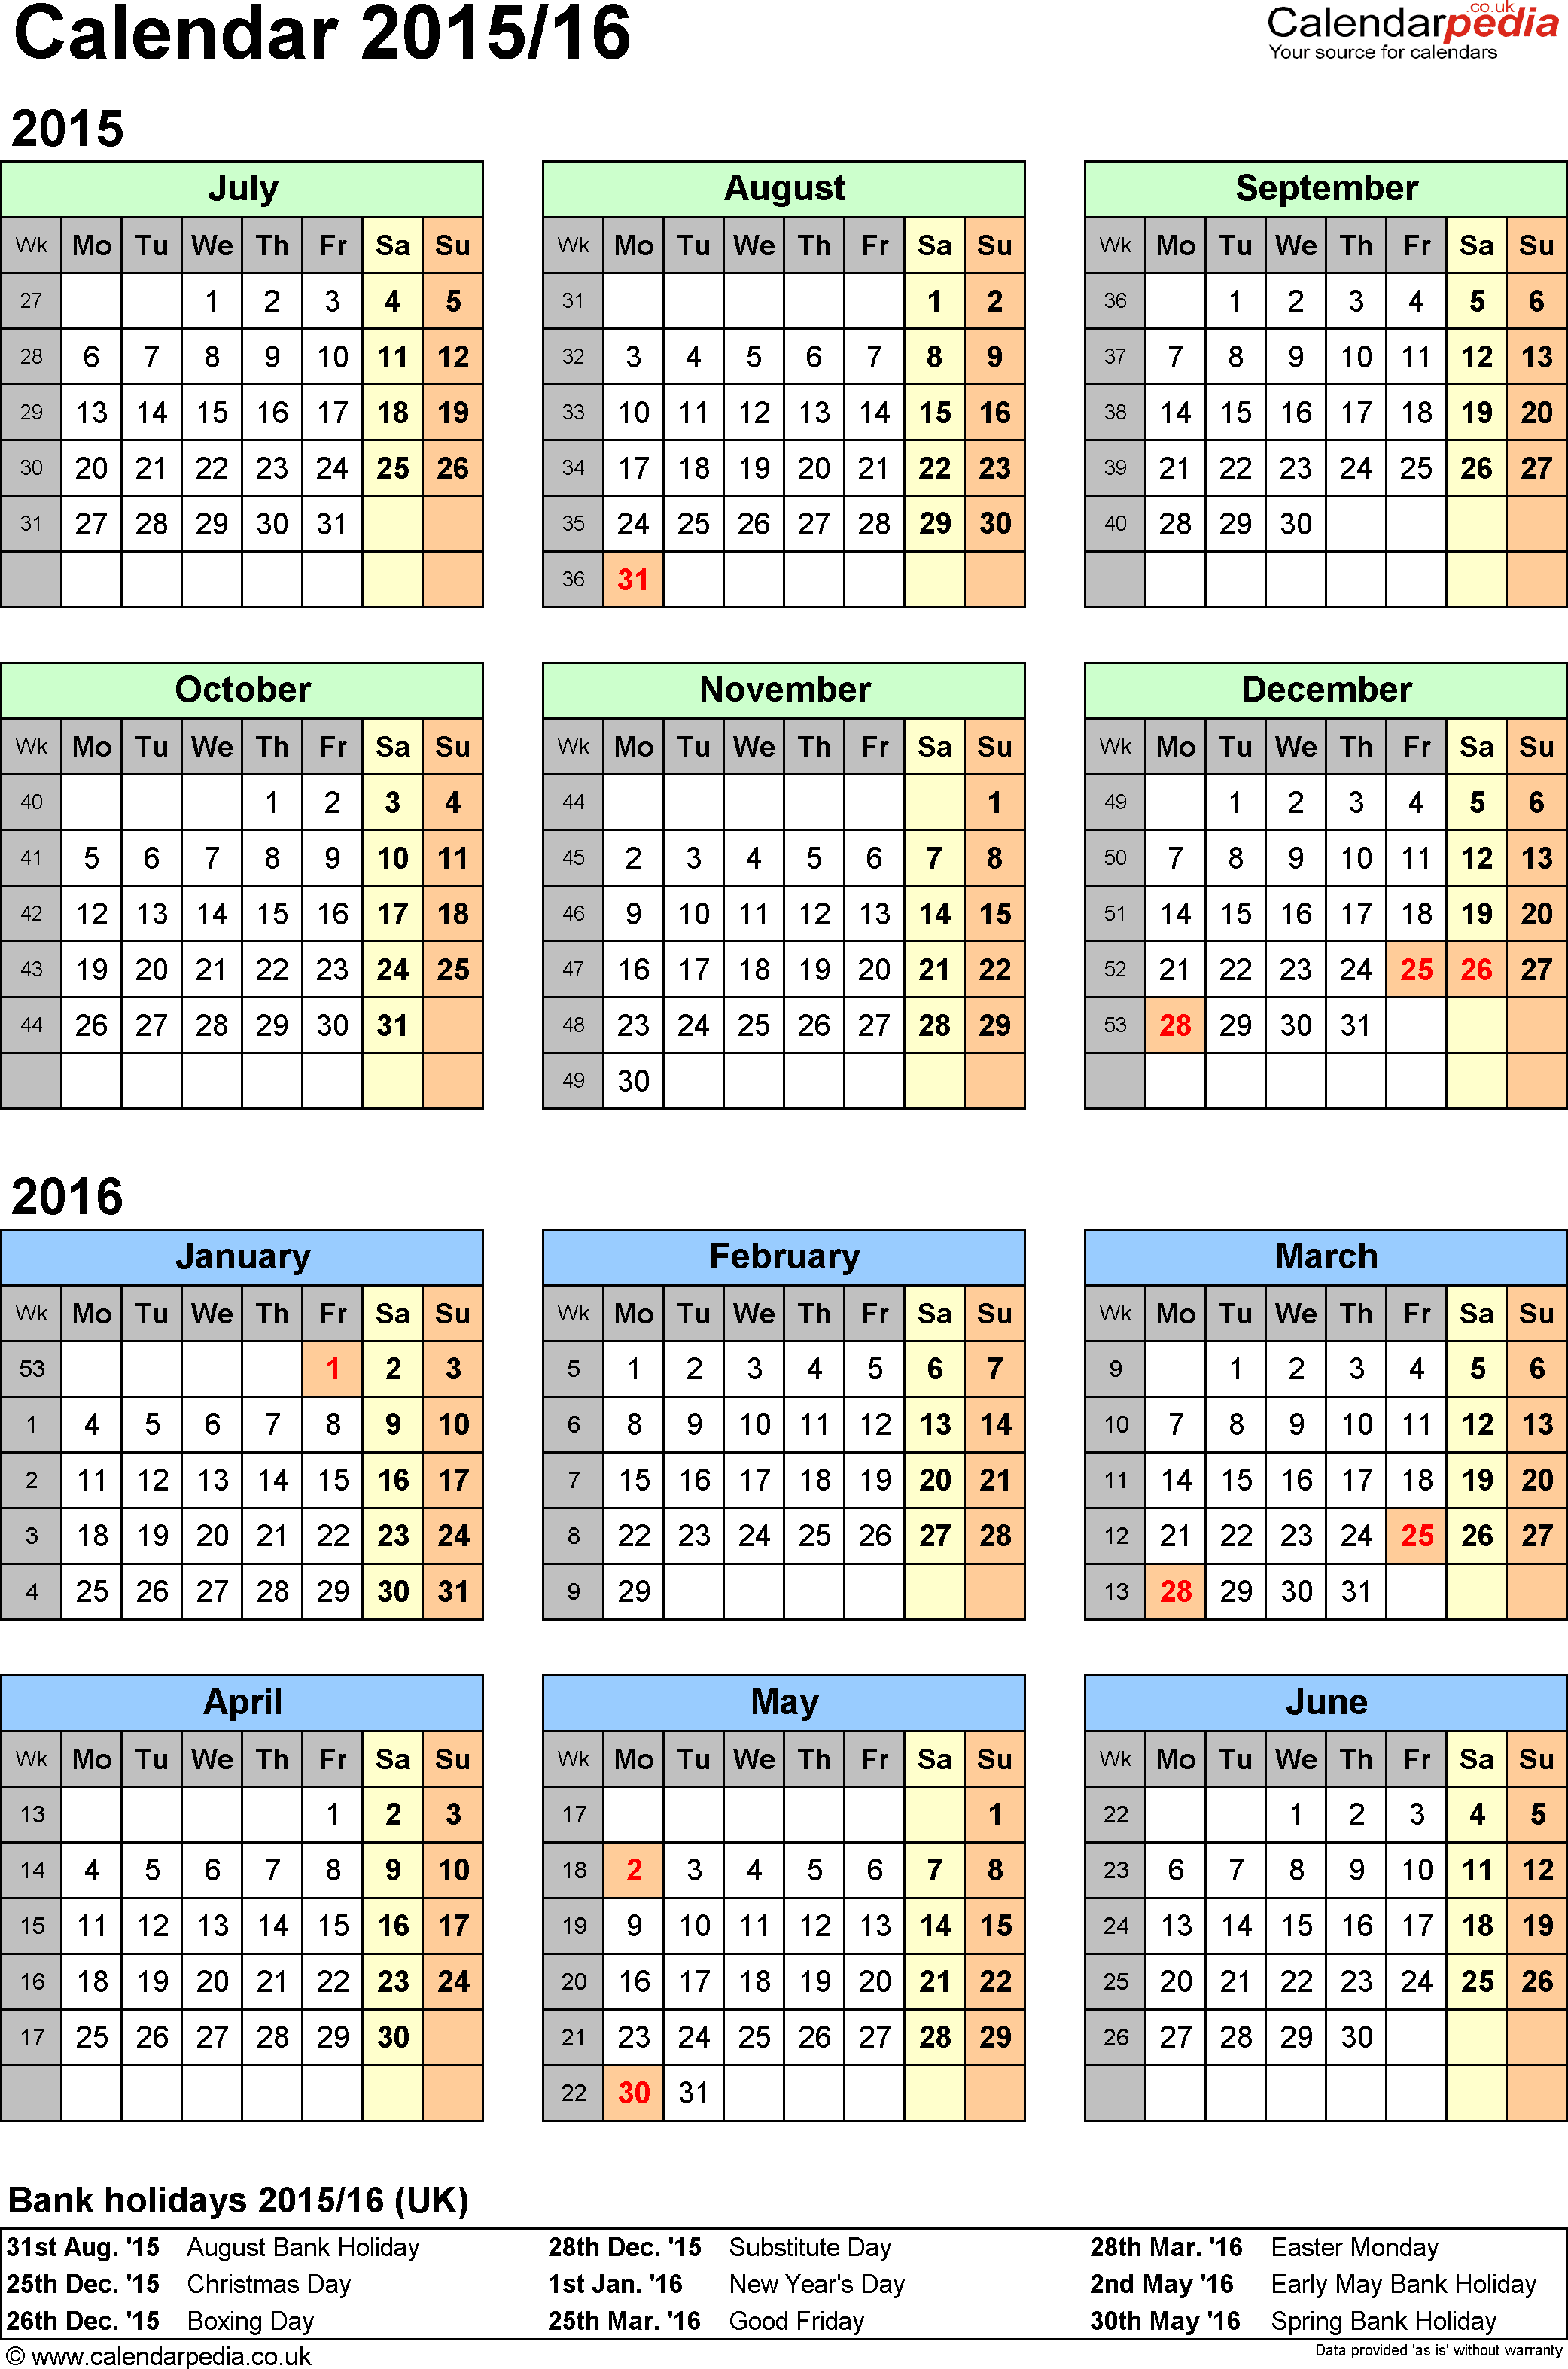 Download Template 2: Excel template for split year calendar 2015/2016 (portrait orientation, 1 page, A4)